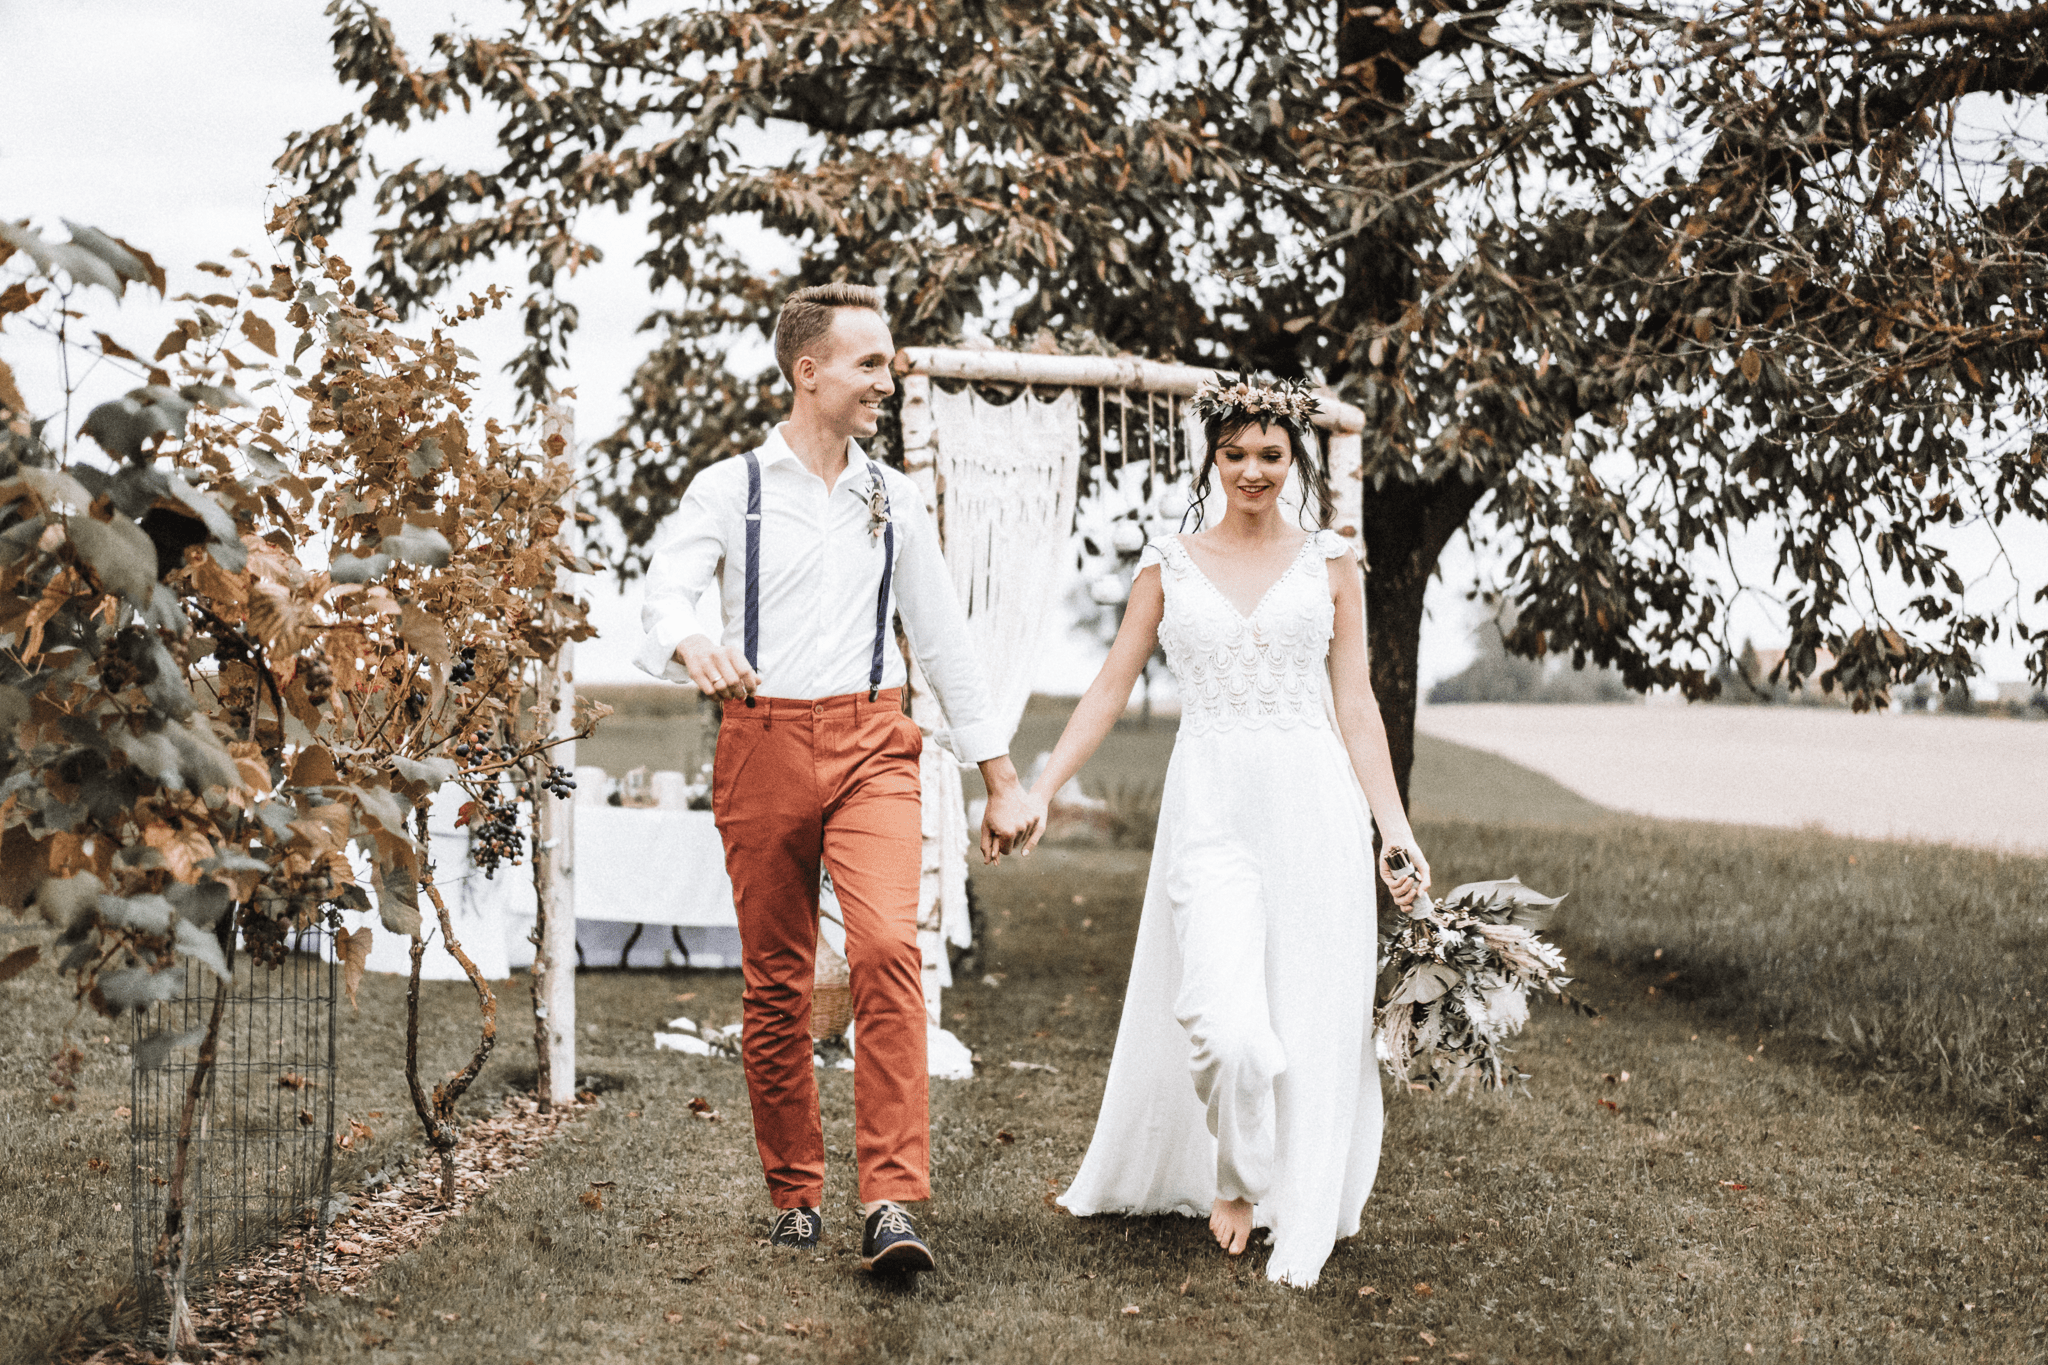 brautatelier ried-styled shooting-fellnerhof-couple 1-boho-laufend-jump suit-1-min